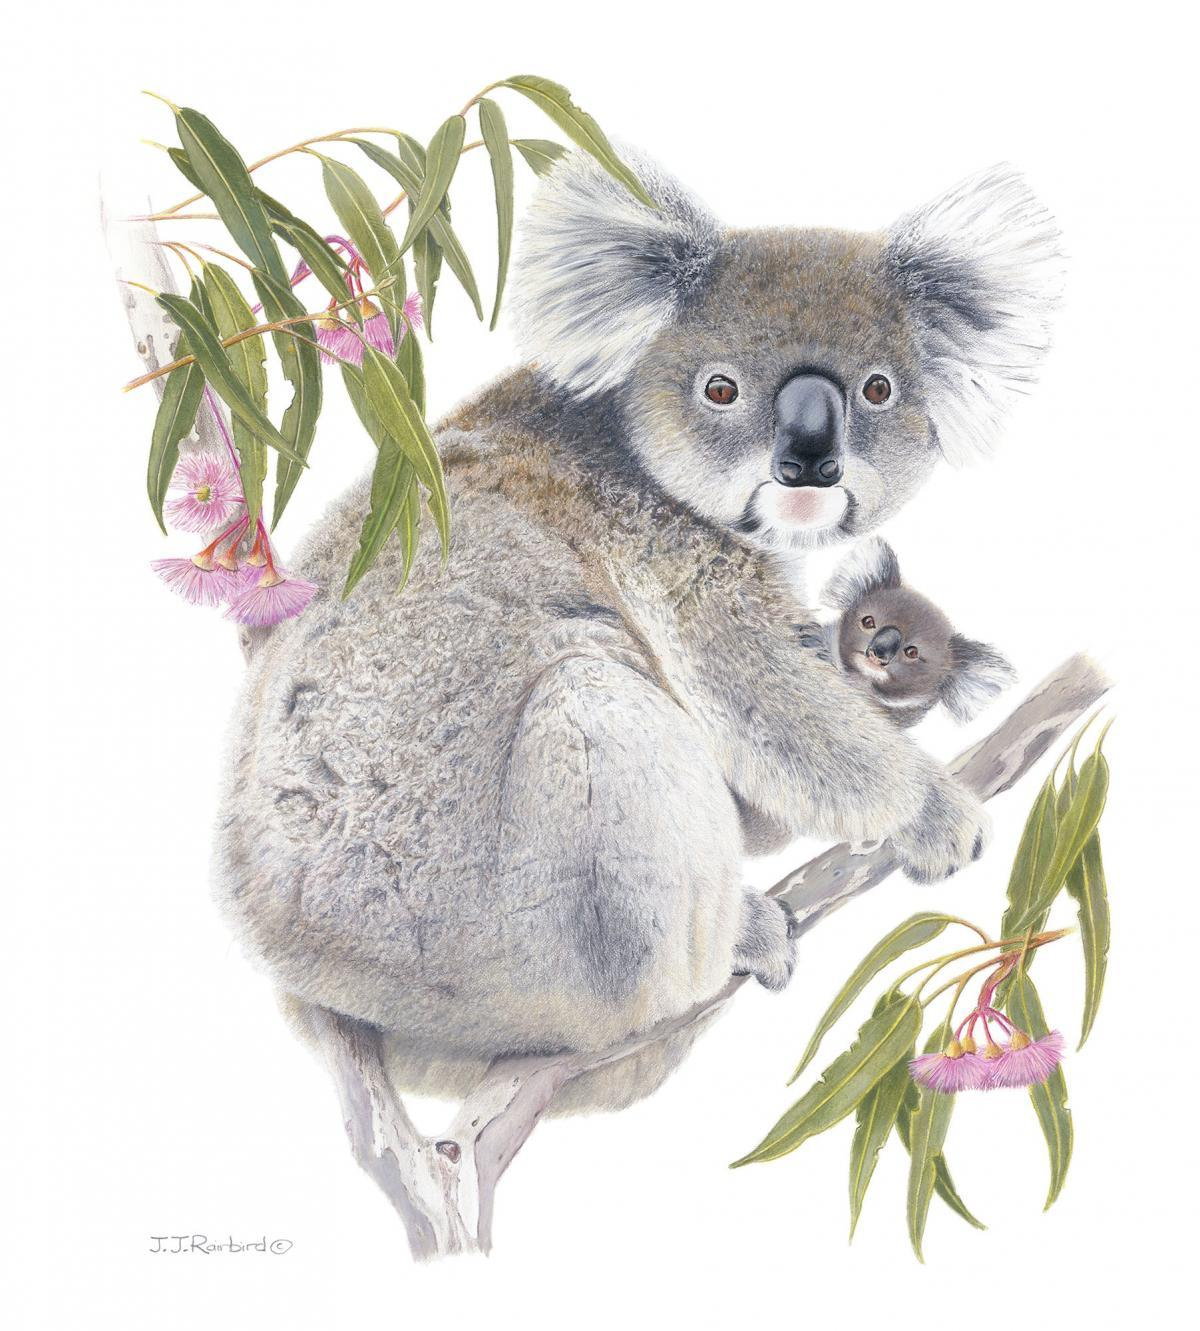   Wallhanging by John Rainbird   Artists for Conservation